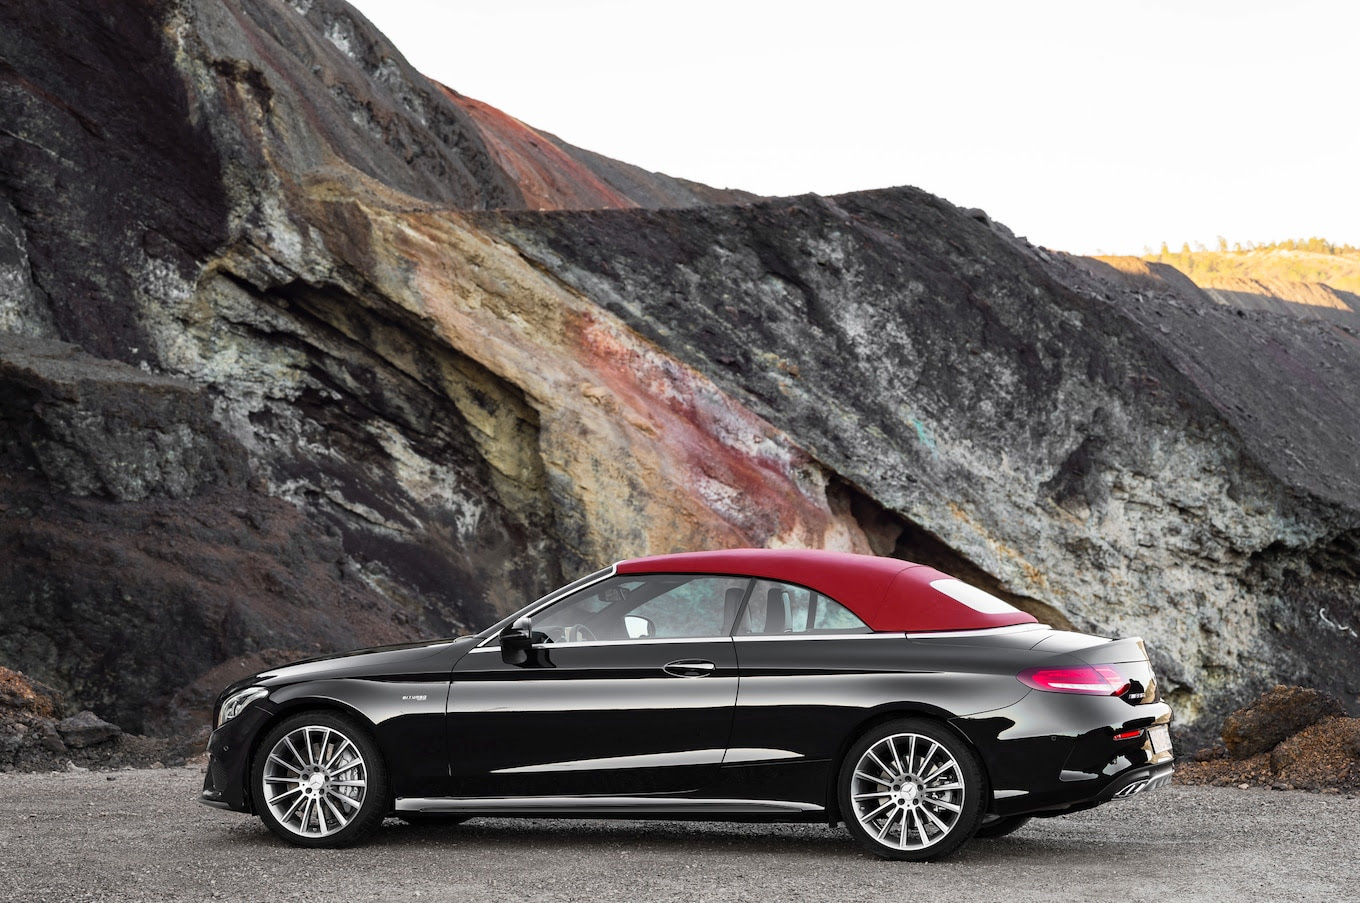 2017 Mercedes-Benz C-Class Cabriolet Drops its Top - Motor ...